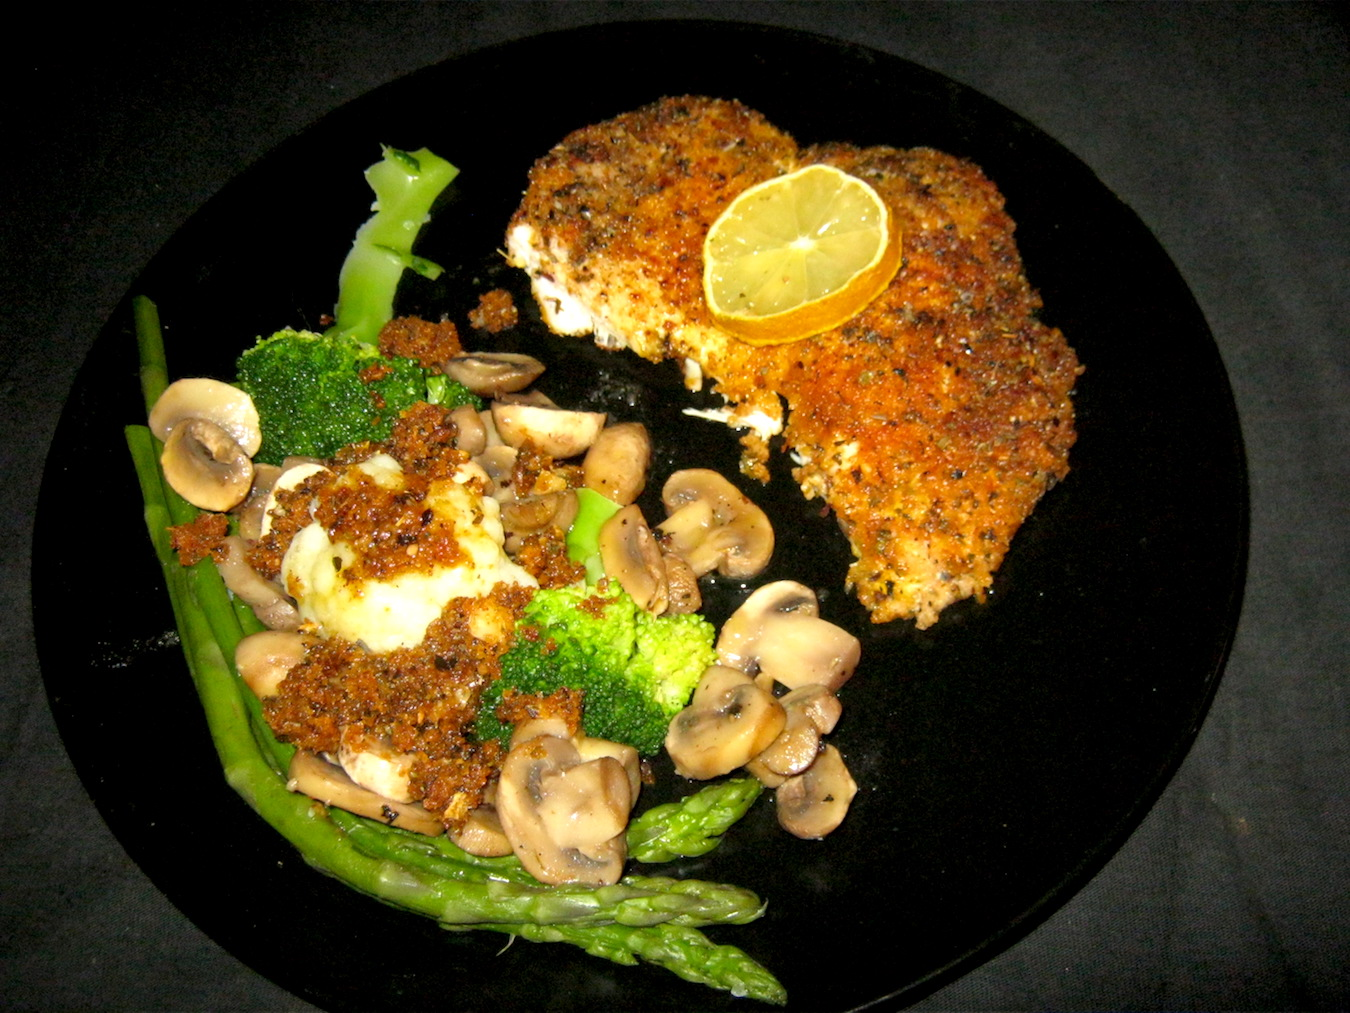 Chicken Schnitzel with Green Asparagus and Veggies